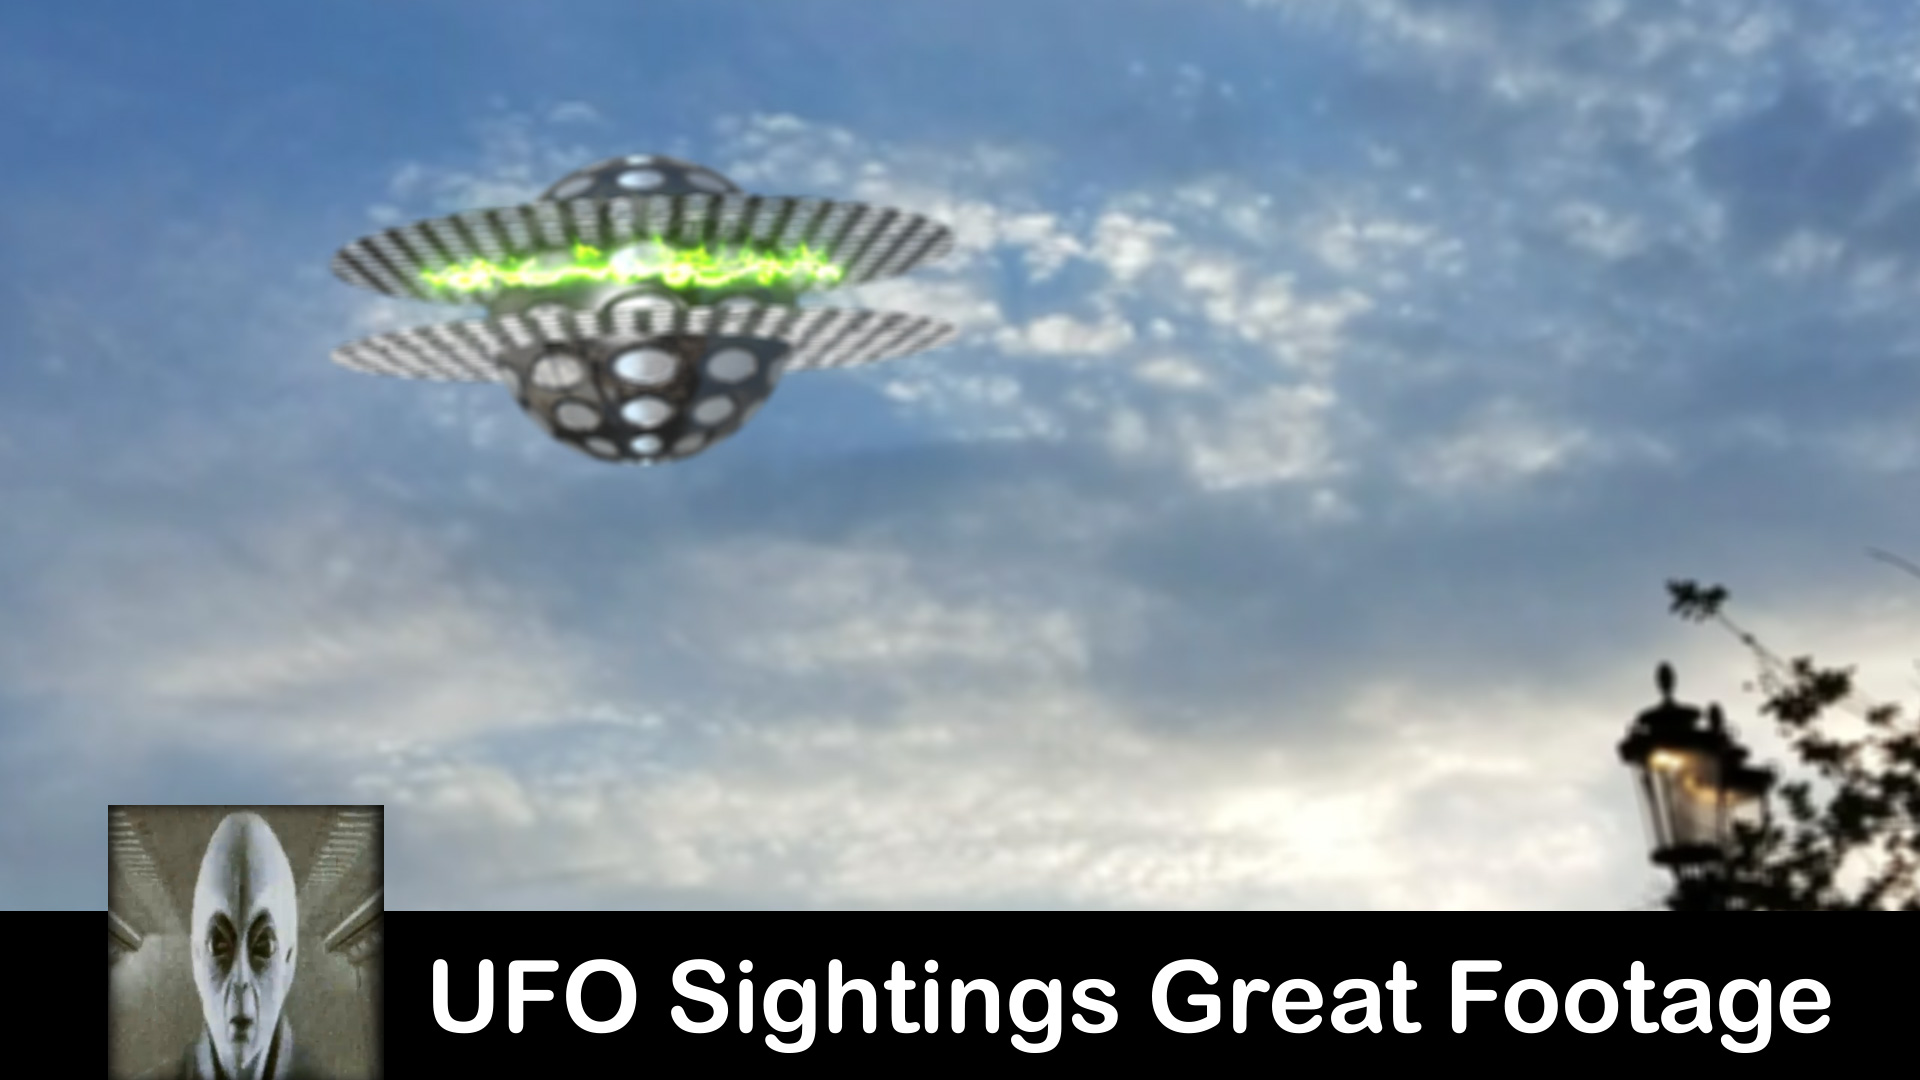 UFO Sightings Great Footage August 1st 2017